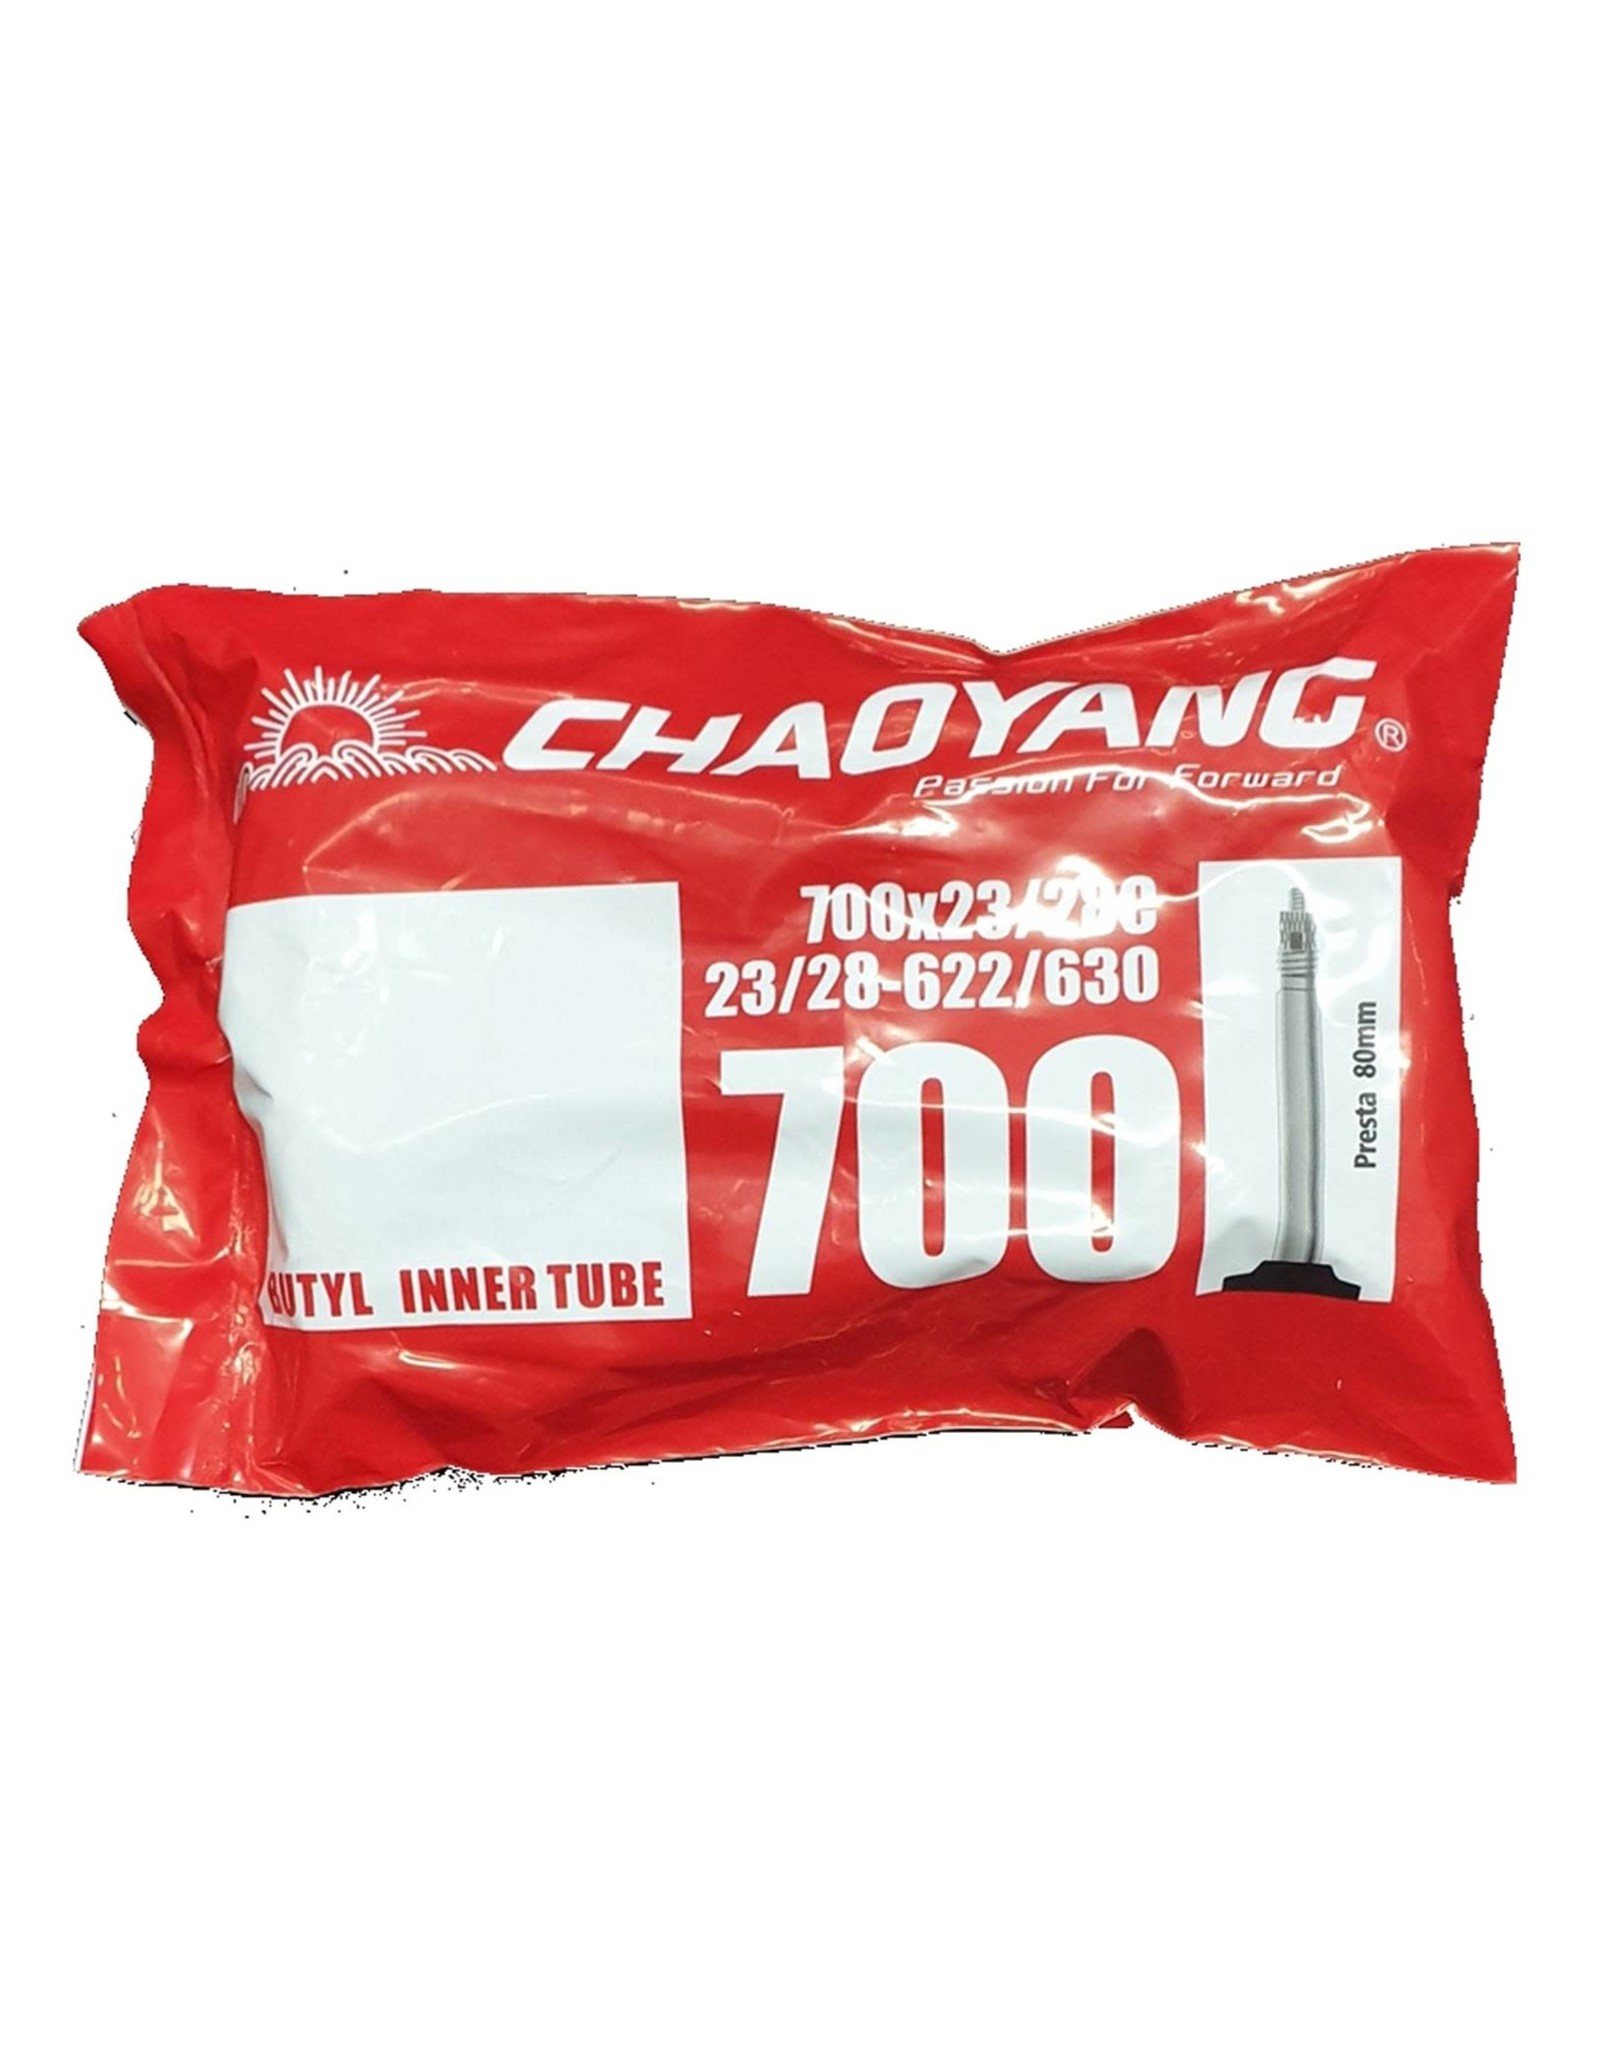 Chaoyang 700 x 23/28 Presta 80mm Bag Tube